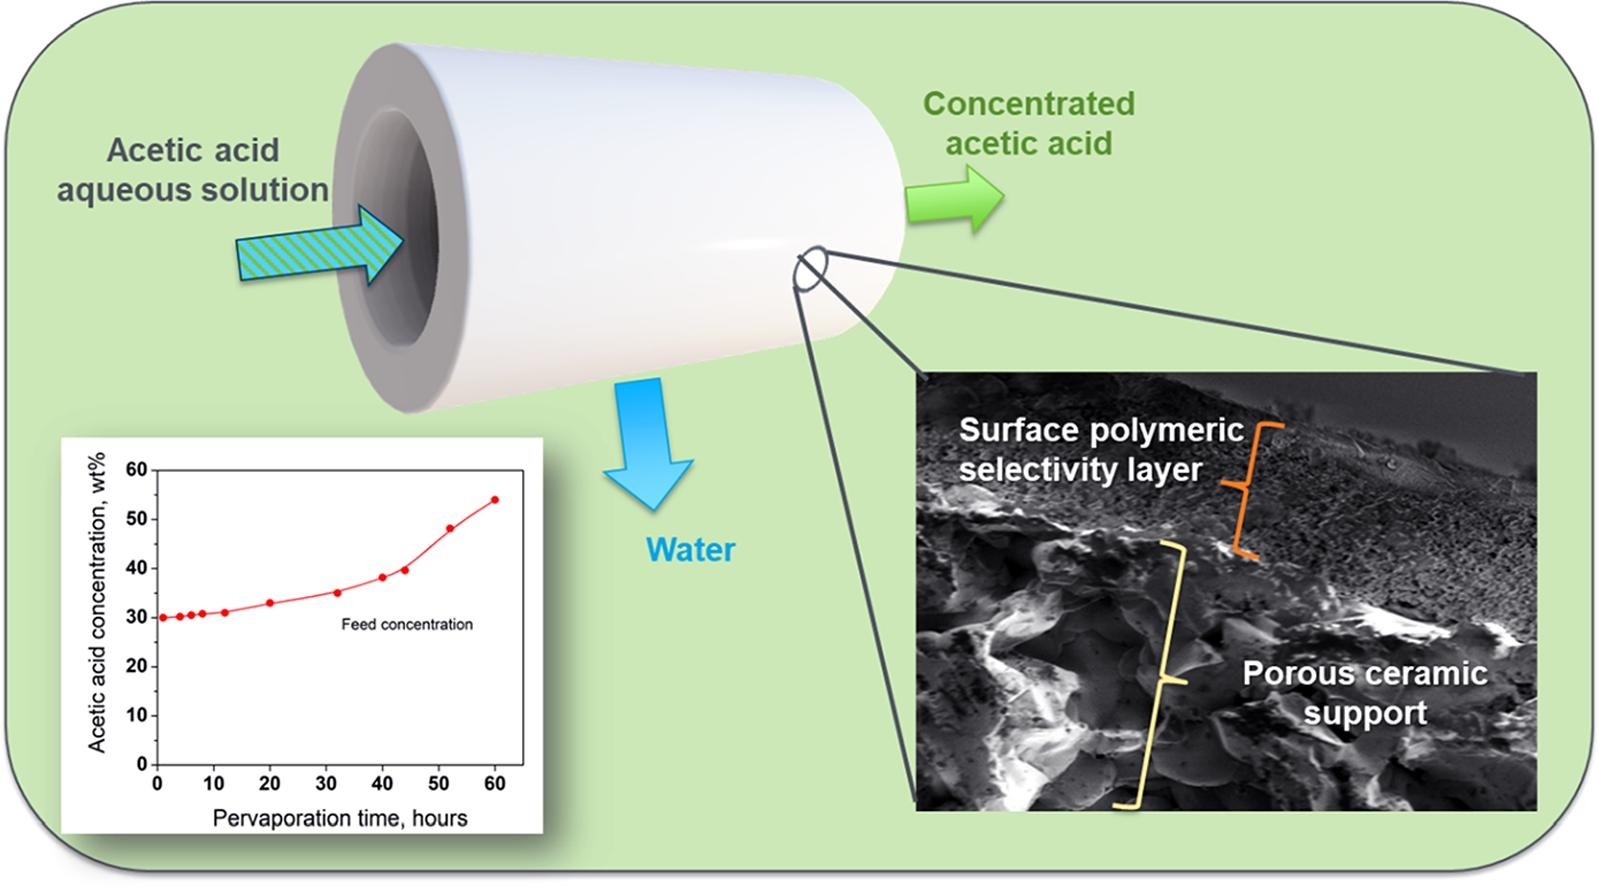 Novel Porous Ceramic Tube-Supported Polymer Layer Membranes for Acetic Acid/Water Separation by Pervaporation Dewatering